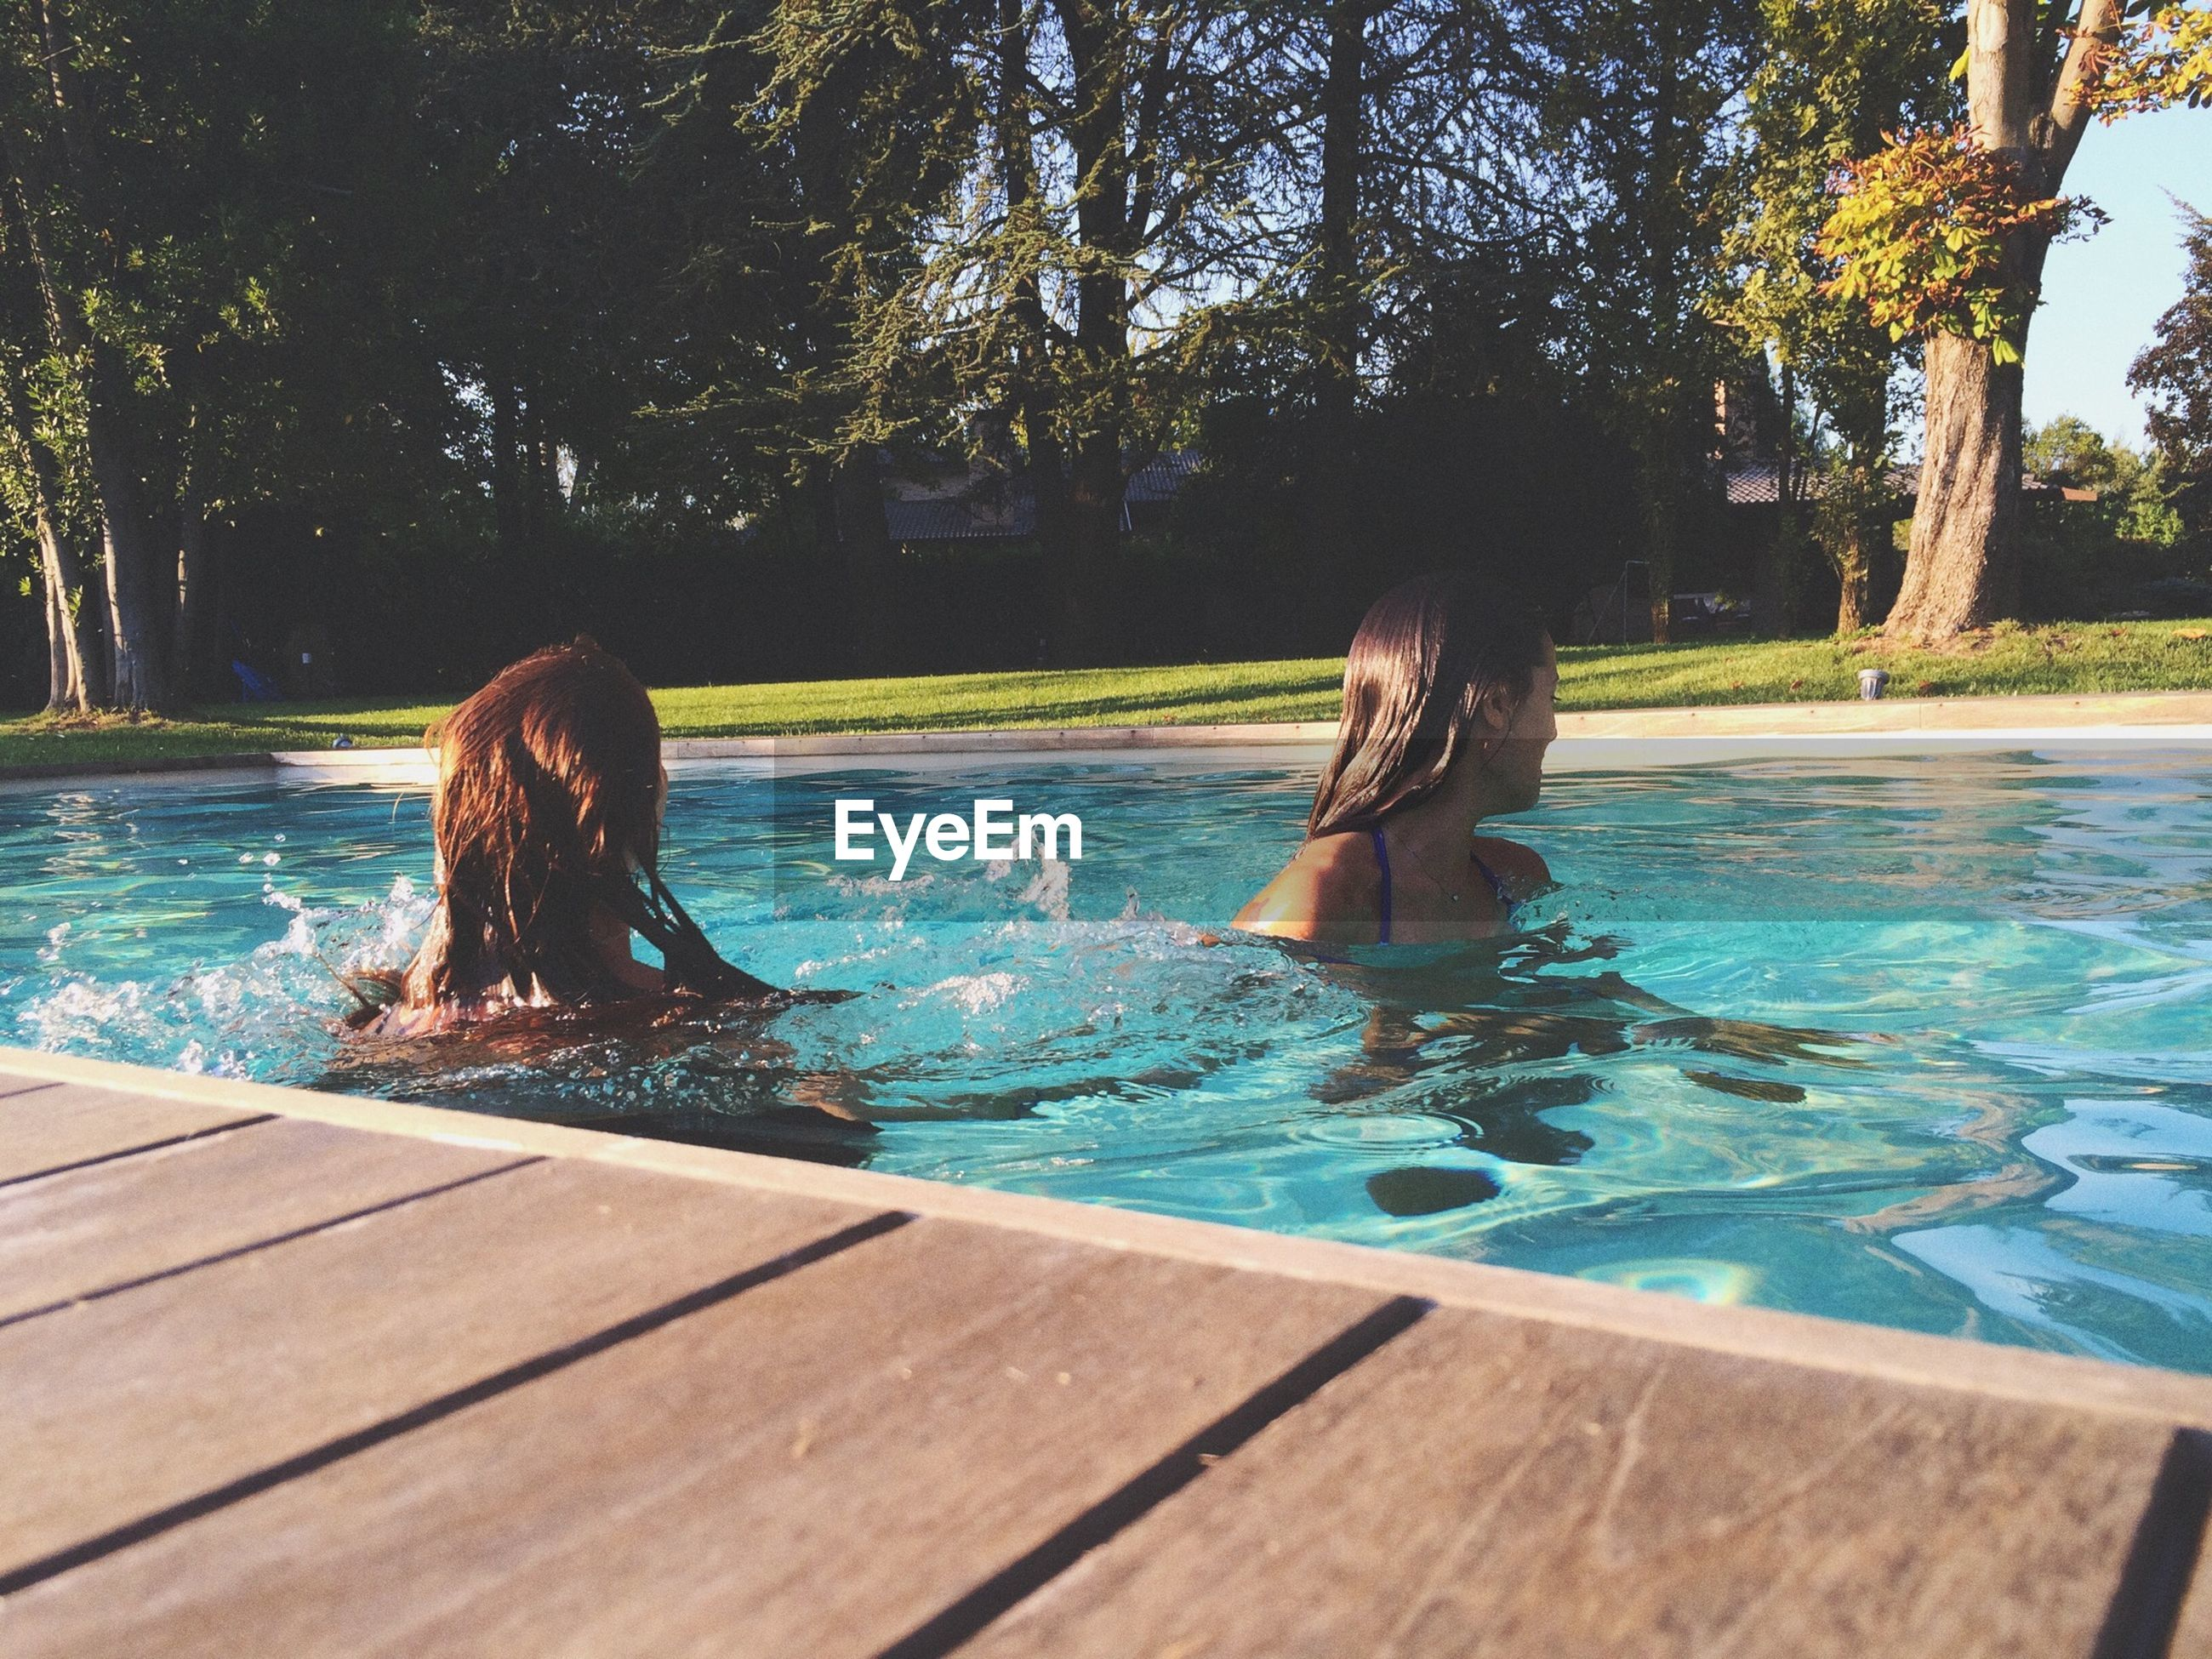 water, tree, swimming pool, nature, tranquility, sunlight, day, wood - material, beauty in nature, lake, splashing, rippled, motion, outdoors, leisure activity, tranquil scene, scenics, relaxation